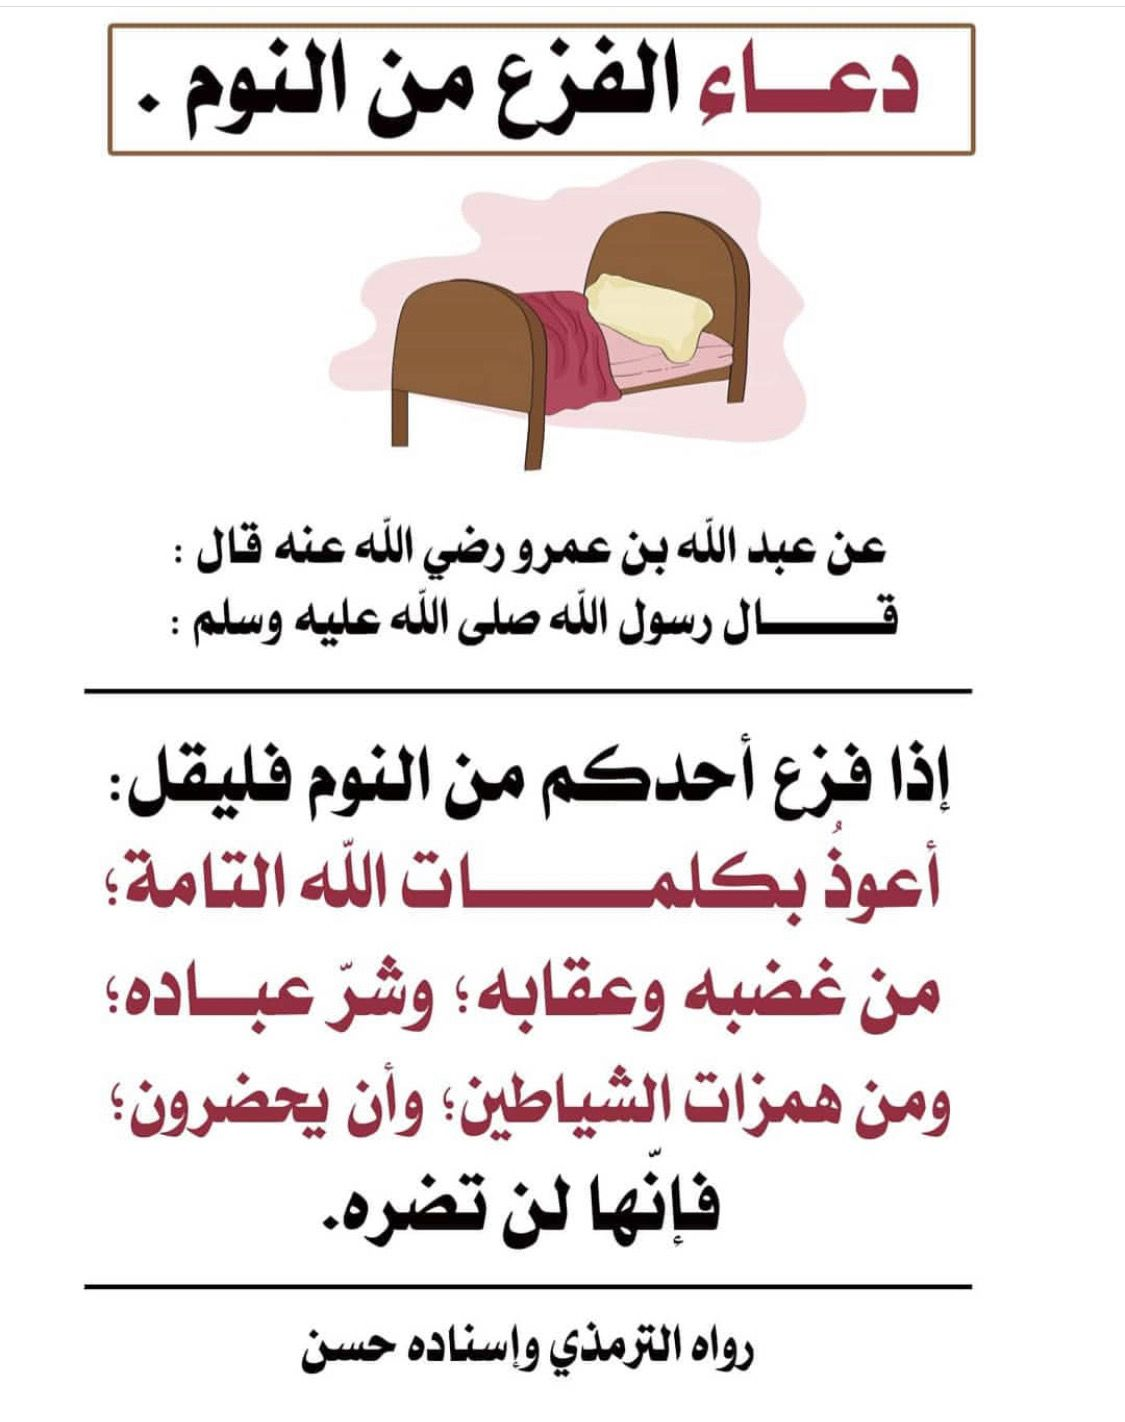 Pin By Abd Elwahed Karroum On أحاديث نبوية Islam Facts Quotes Islam Quran